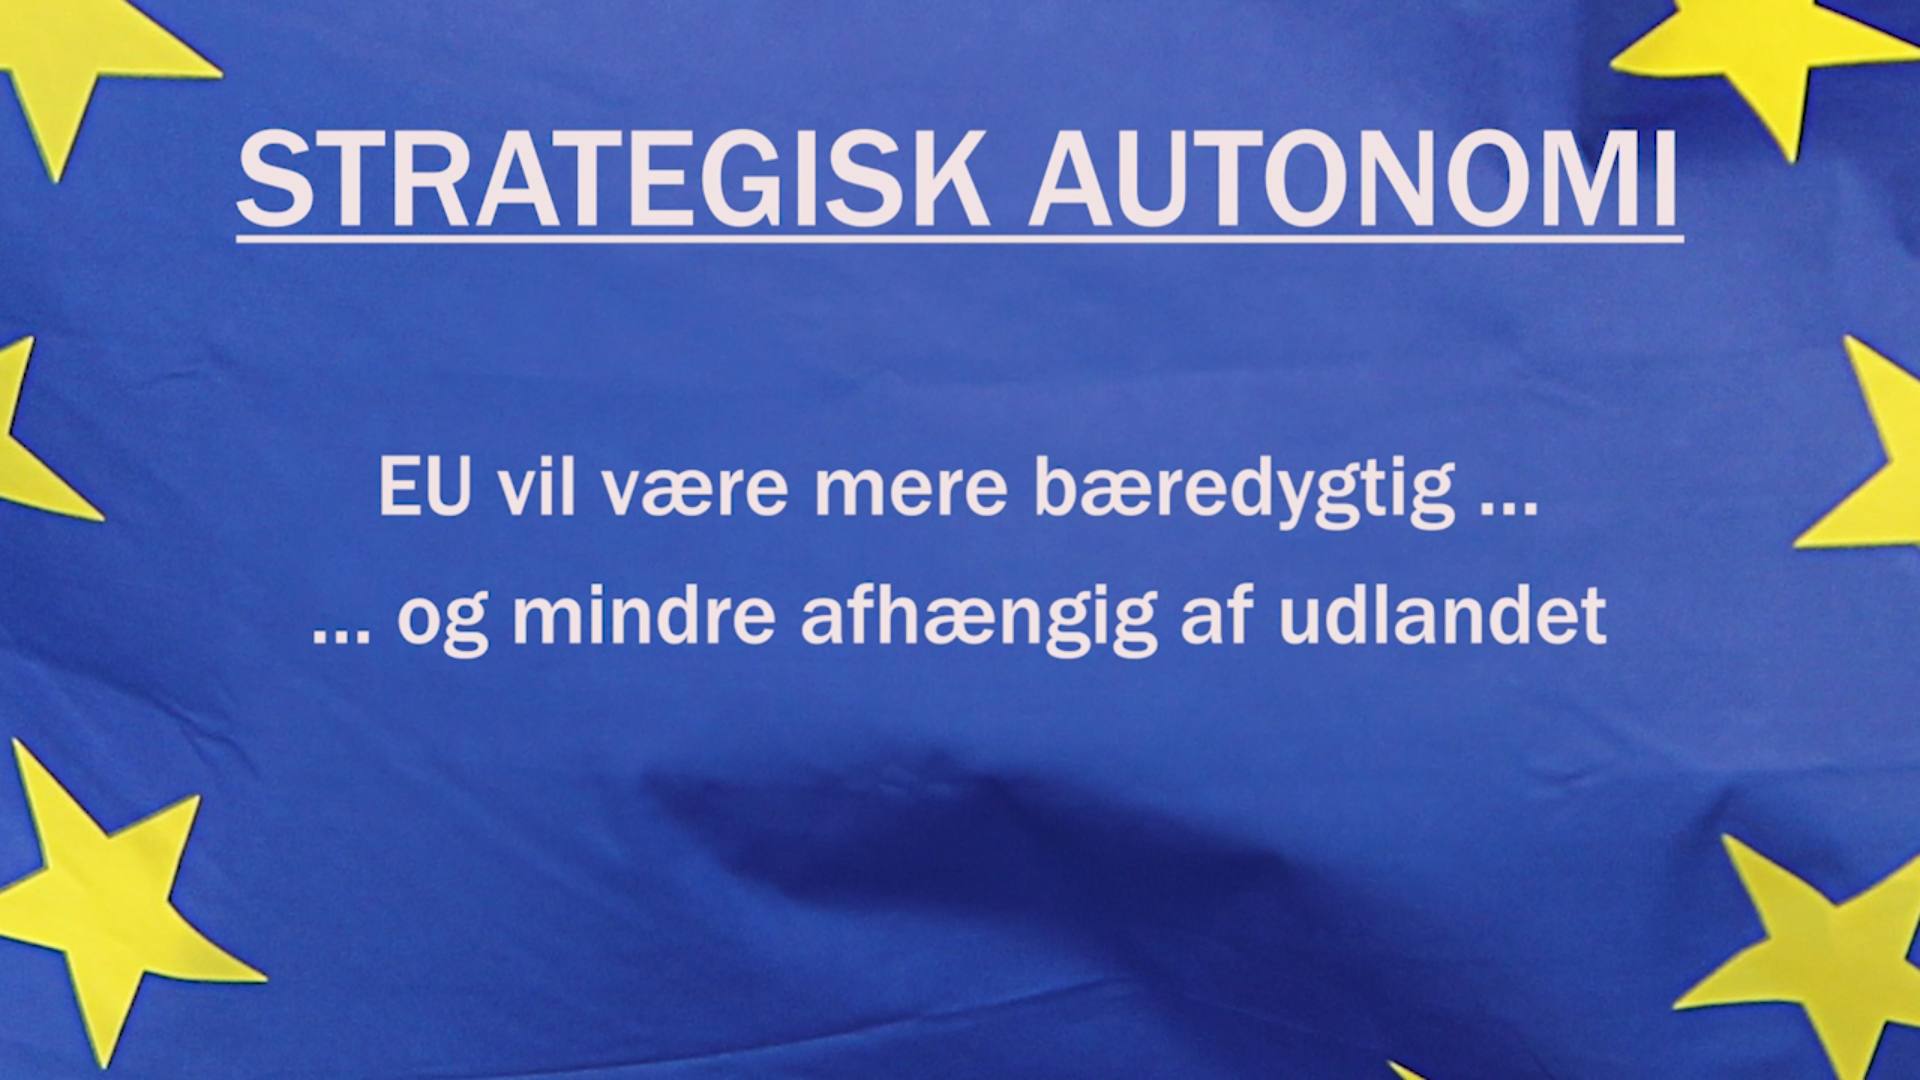 The EU has strong plans to achieve strategic autonomy in a wide range of areas